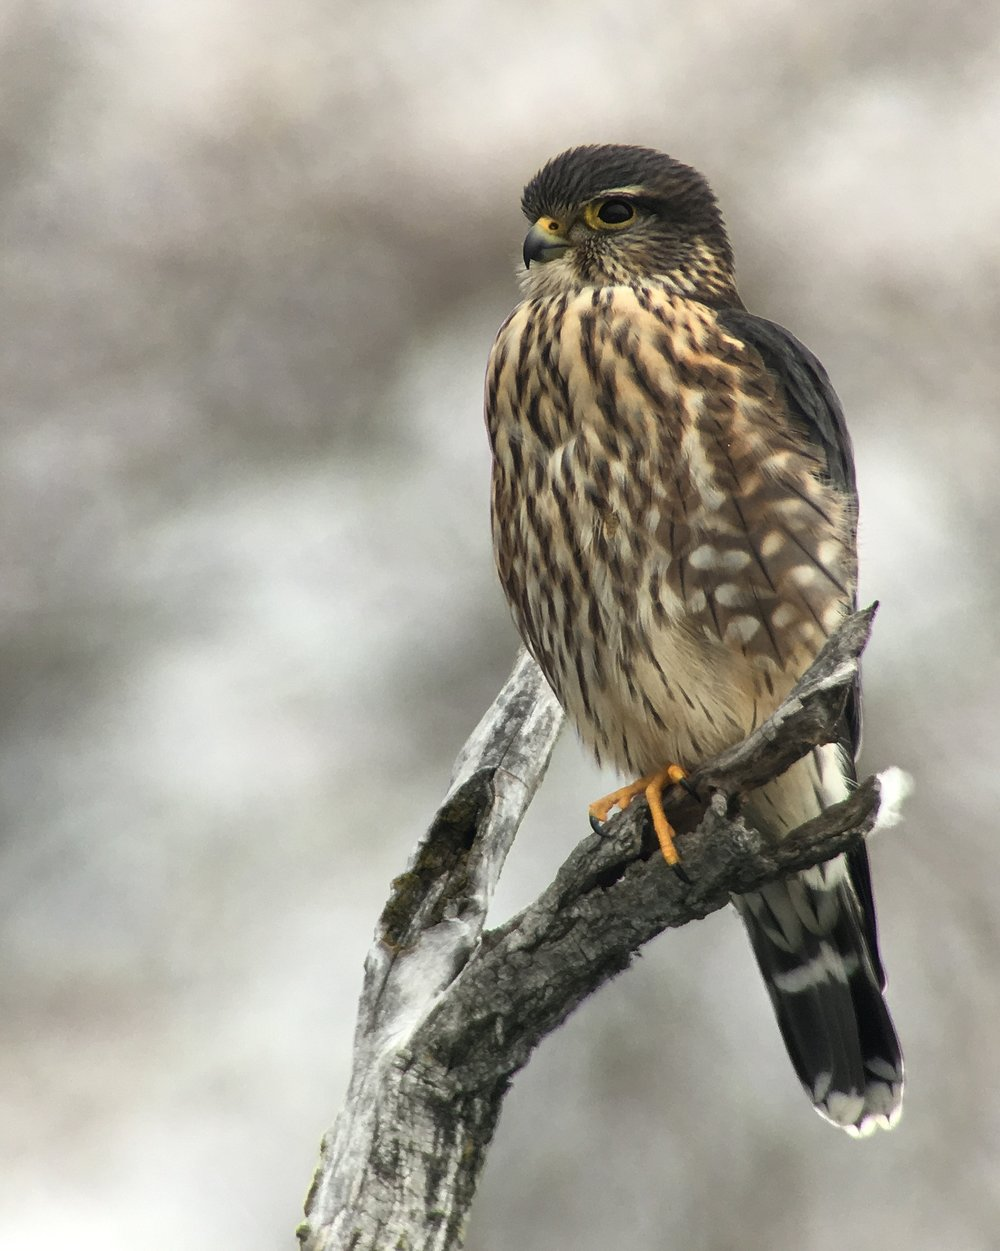 "- Merlin (Falco columbarius)Merlins generally live in open areas, but habitat depends on which region of North America they live. Their diet consists of smaller birds, insects, and small mammals such as bats and rodents. They have a wingspan of 20.9-26.8 in. and weigh 5.6-8.5 oz. Merlins sometimes make a call like the American Kestrel's ""klee-klee-klee,"" but usually do not make much noise. They are protected on the US Migratory Bird list.Frequency: RarePhoto Credits: Flickr User Seabamirum"